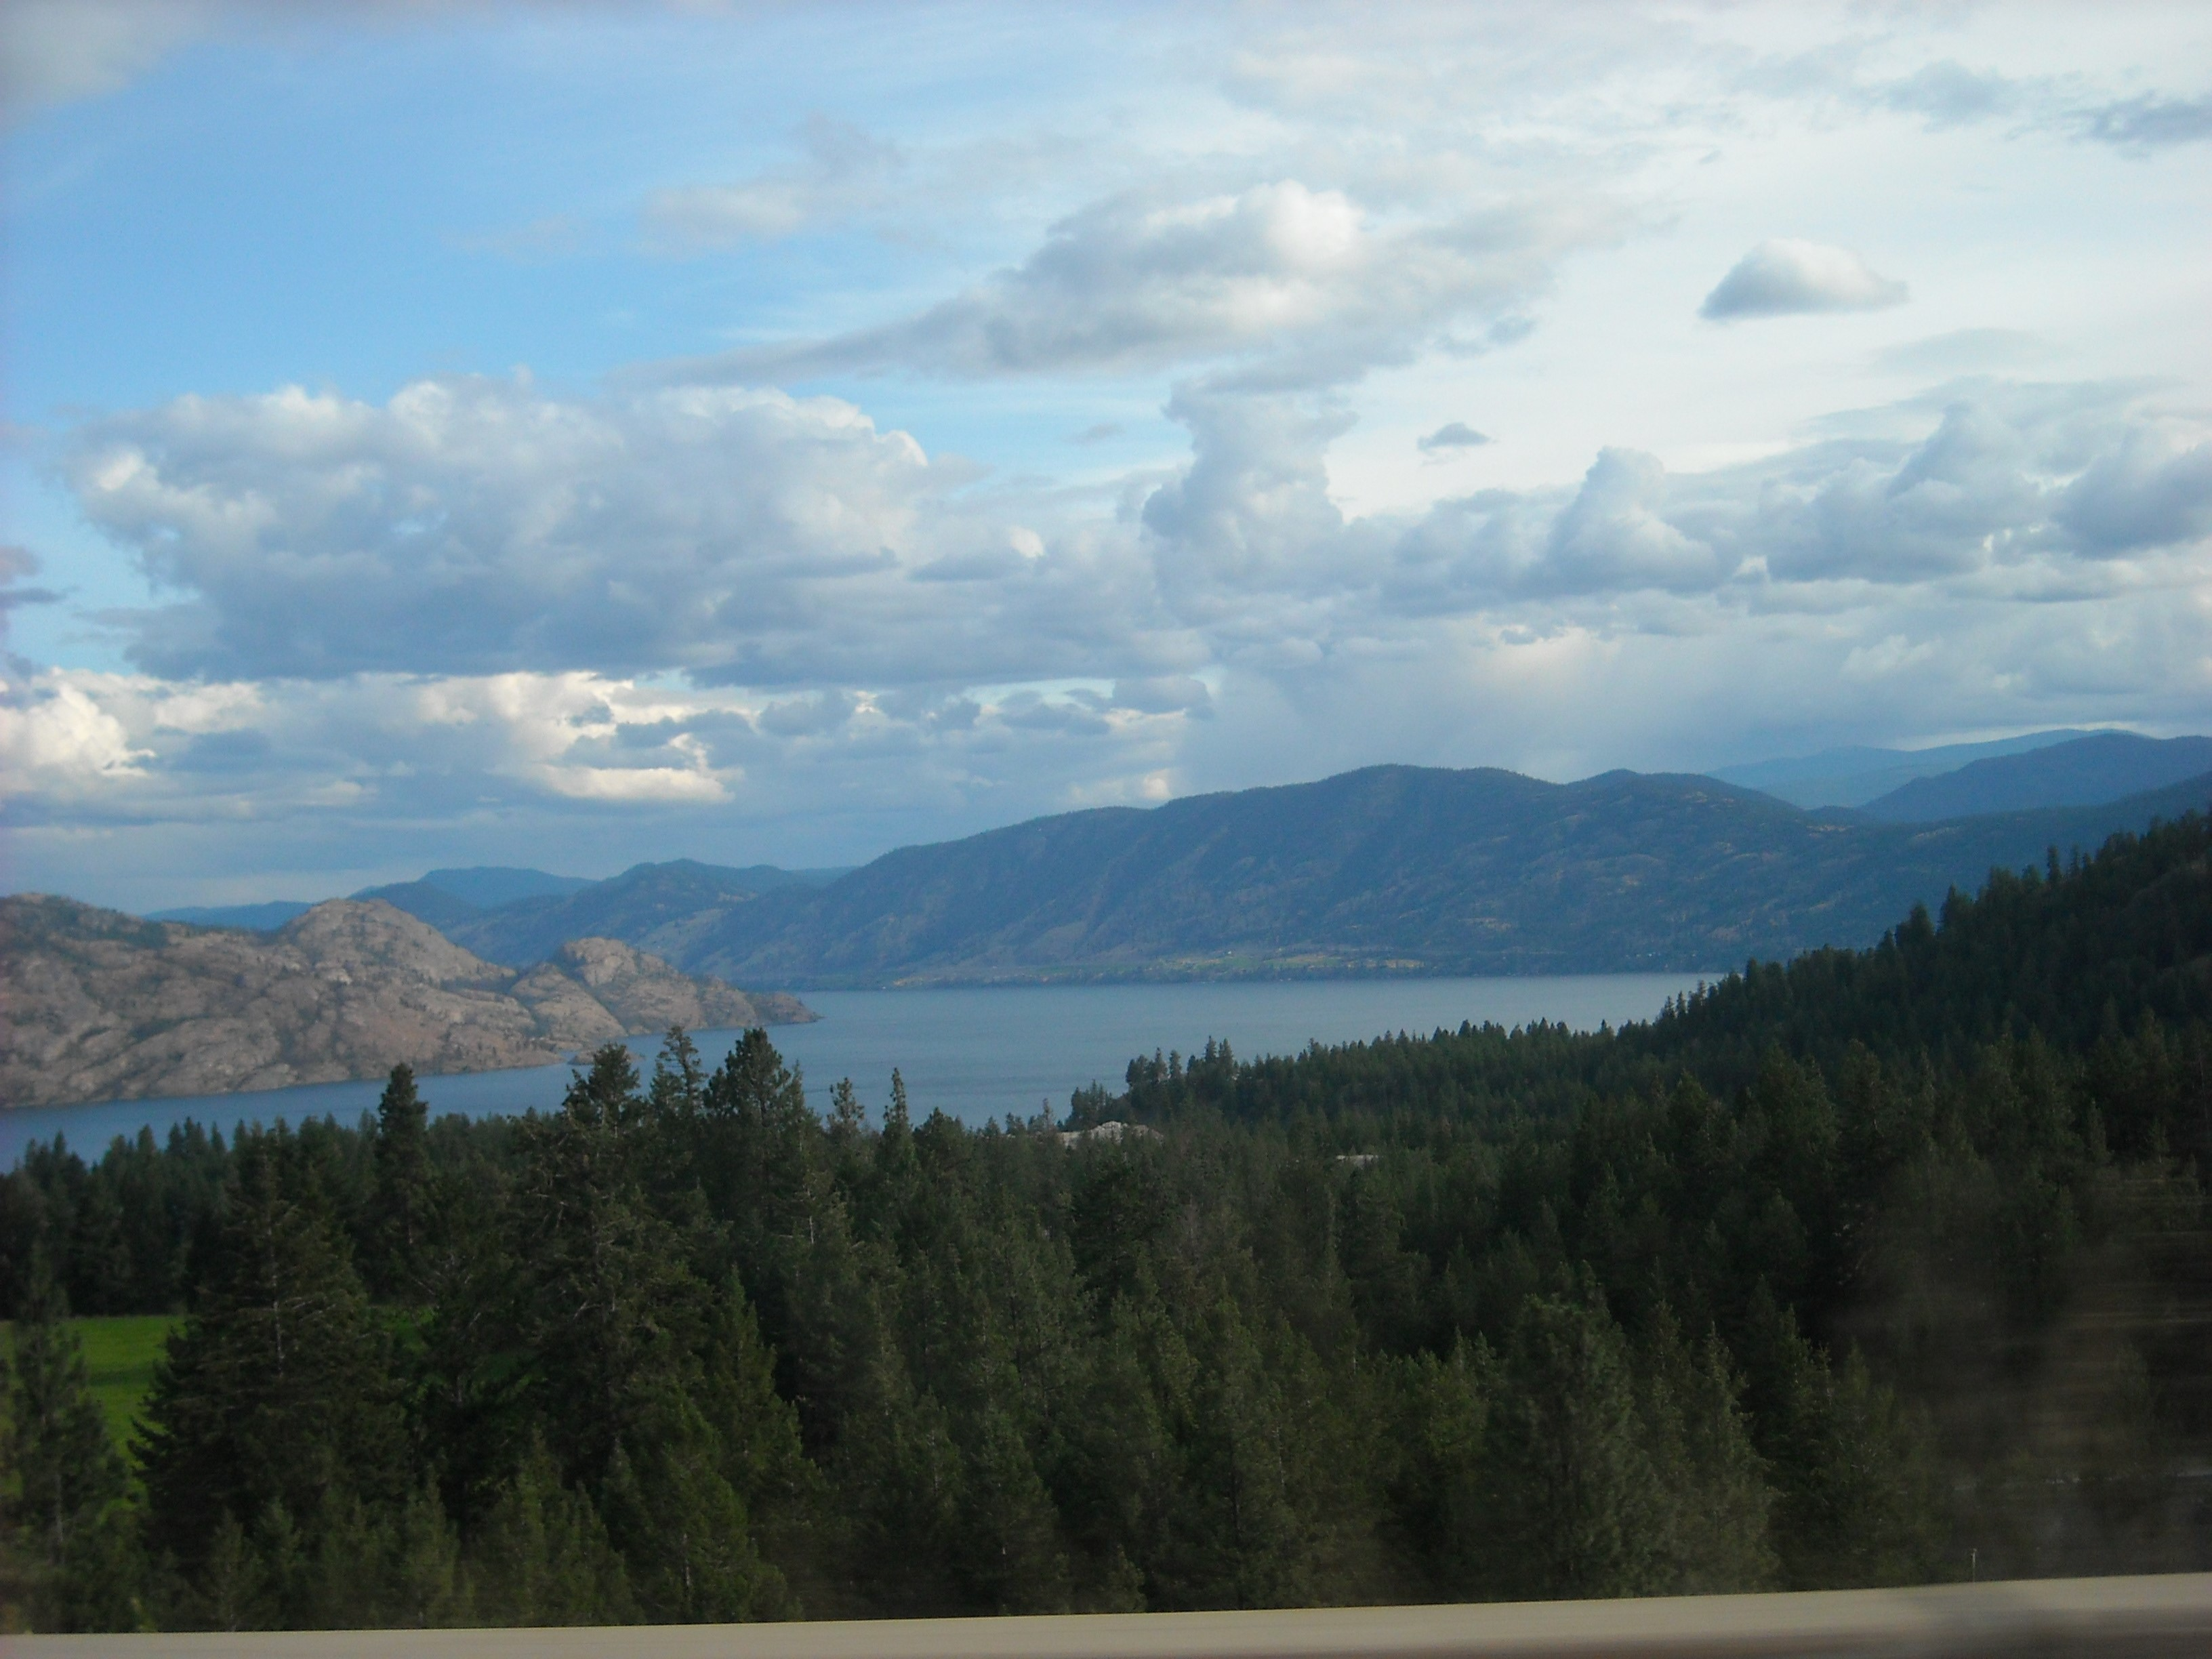 Officials in the Okanagan basin in British Columbia are increasingly concerned about zebra and quagga mussels, as the invasive pests continue to spread westward. Credit: AndrewEnns